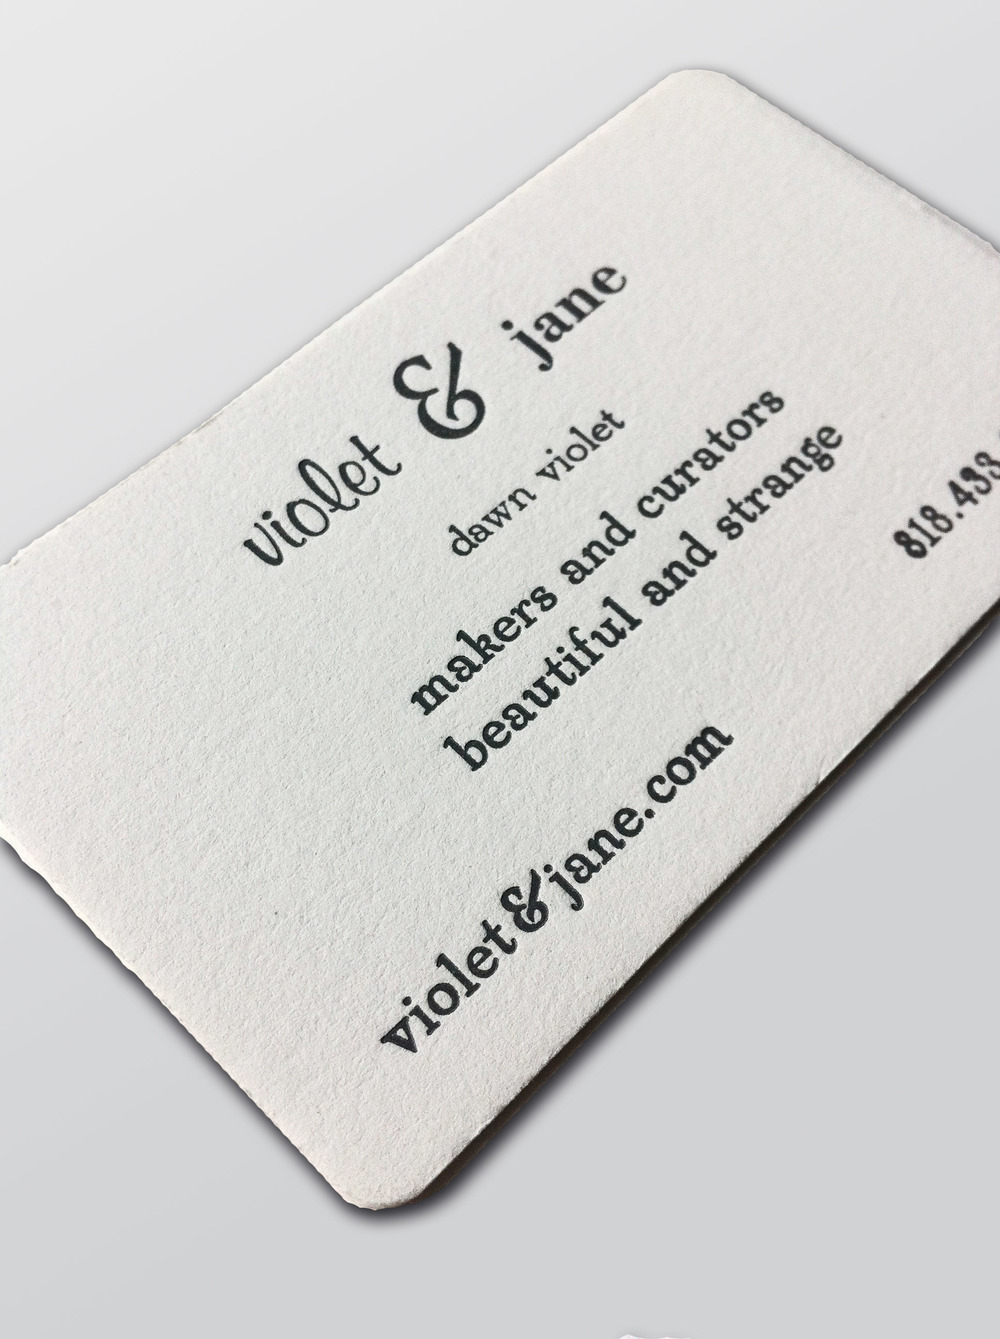 Violet & Jane's business card. All hand set type.